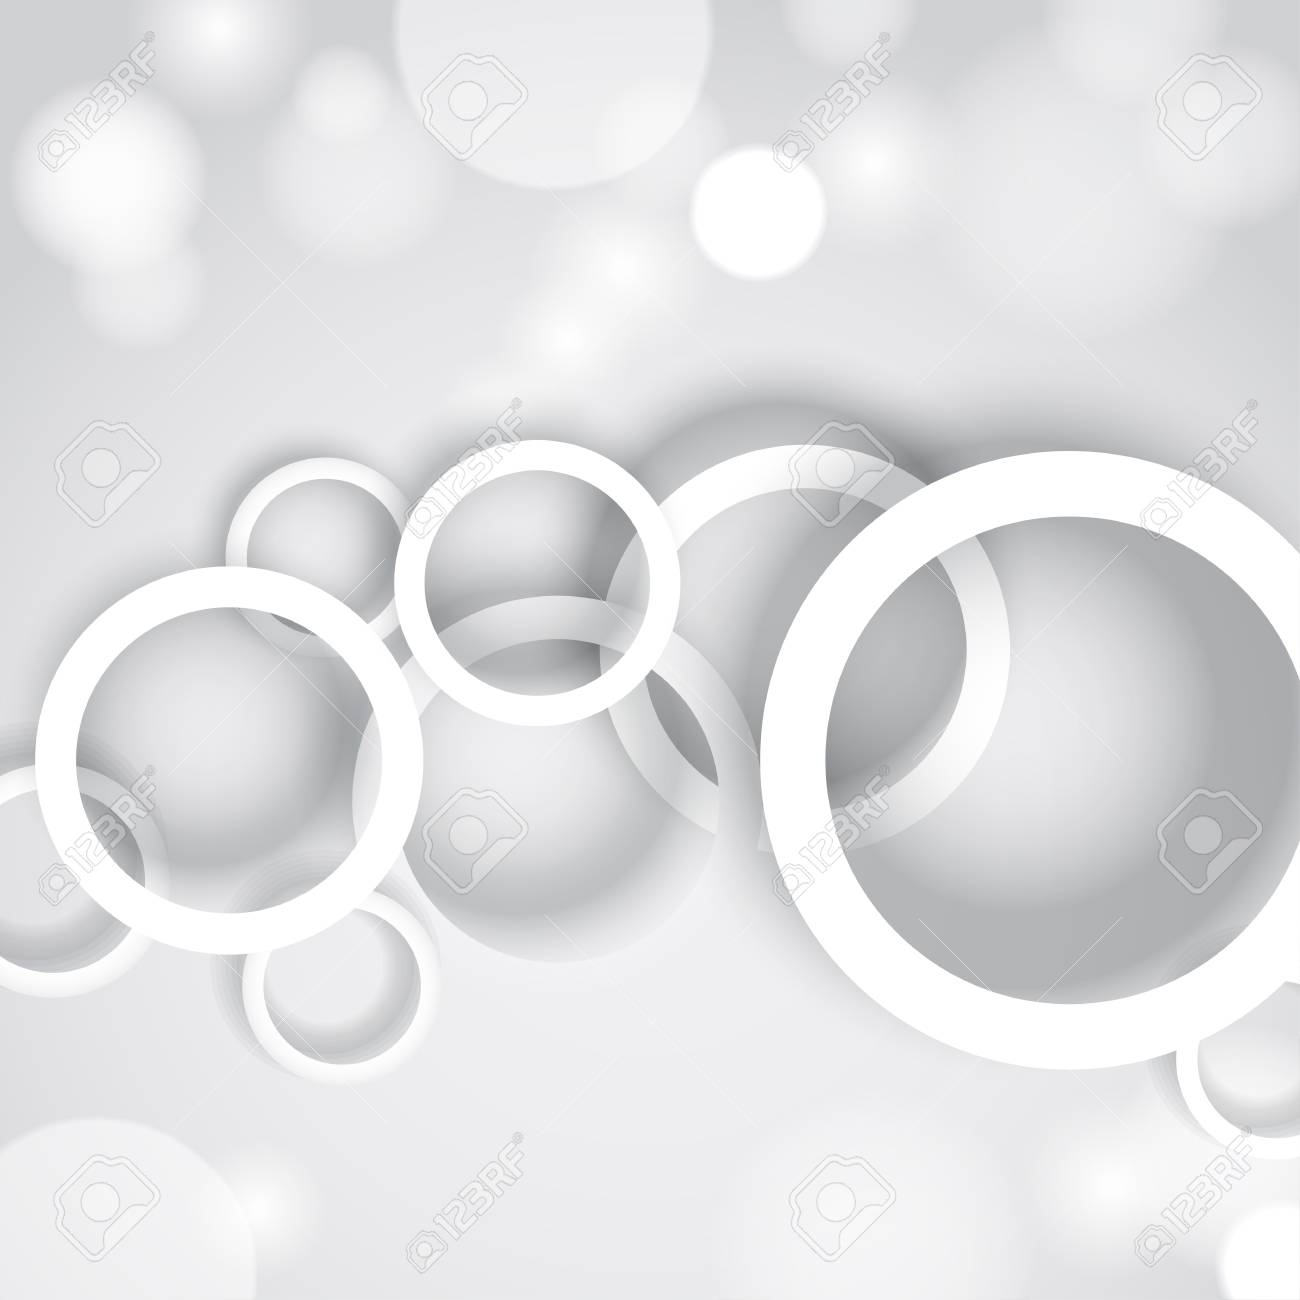 Abstract background with white circles Stock Vector - 17574445